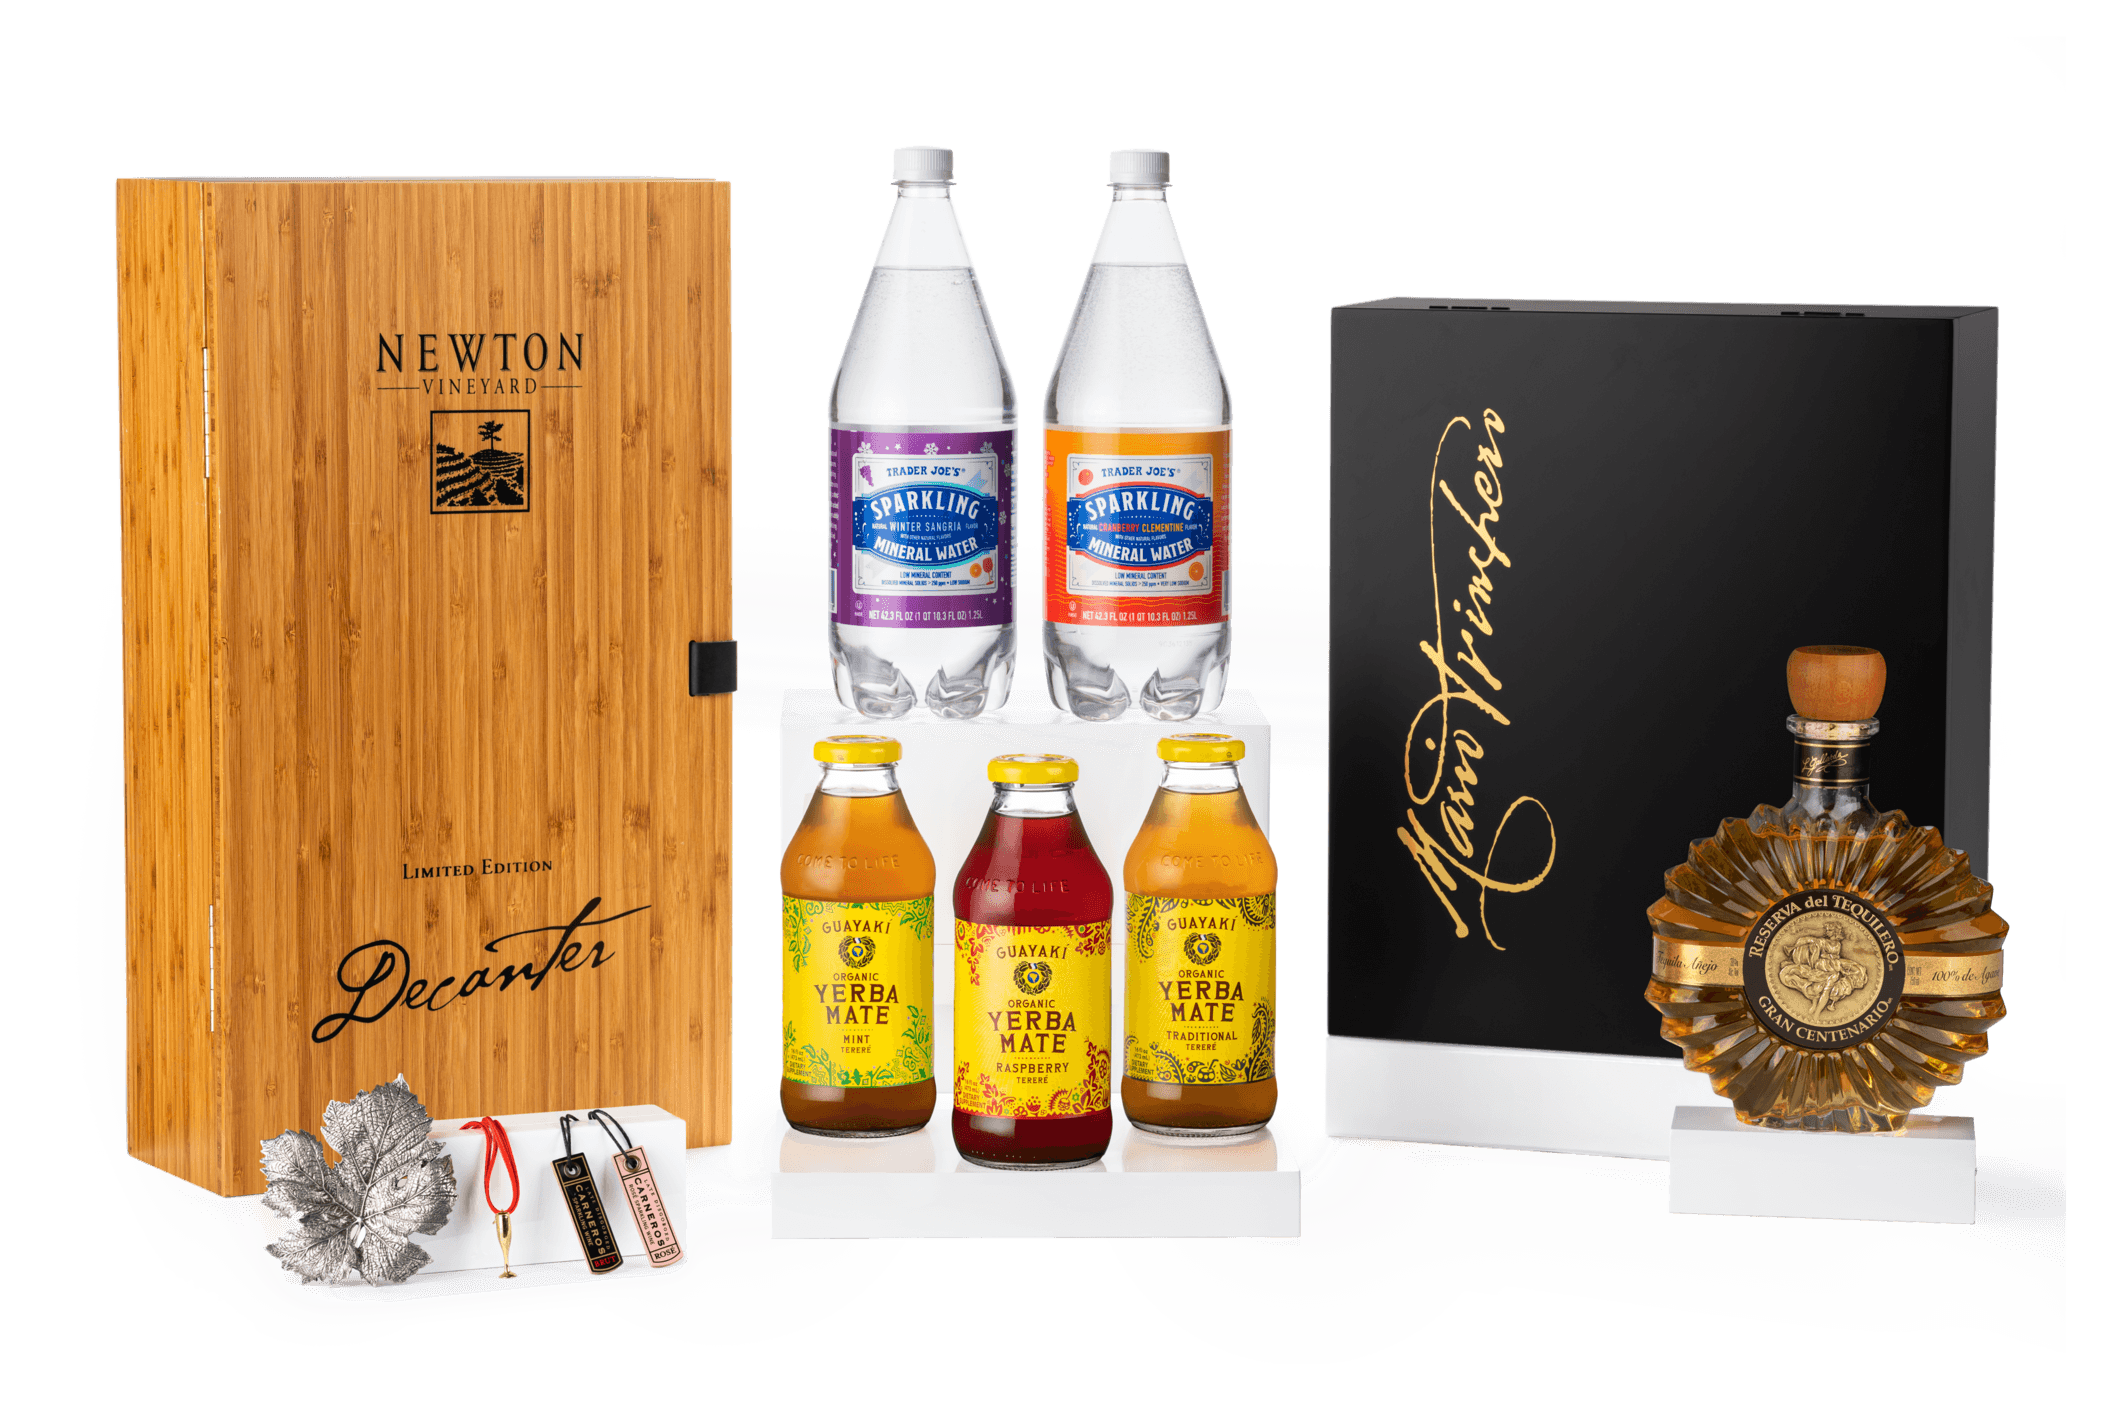 Packagingarts products